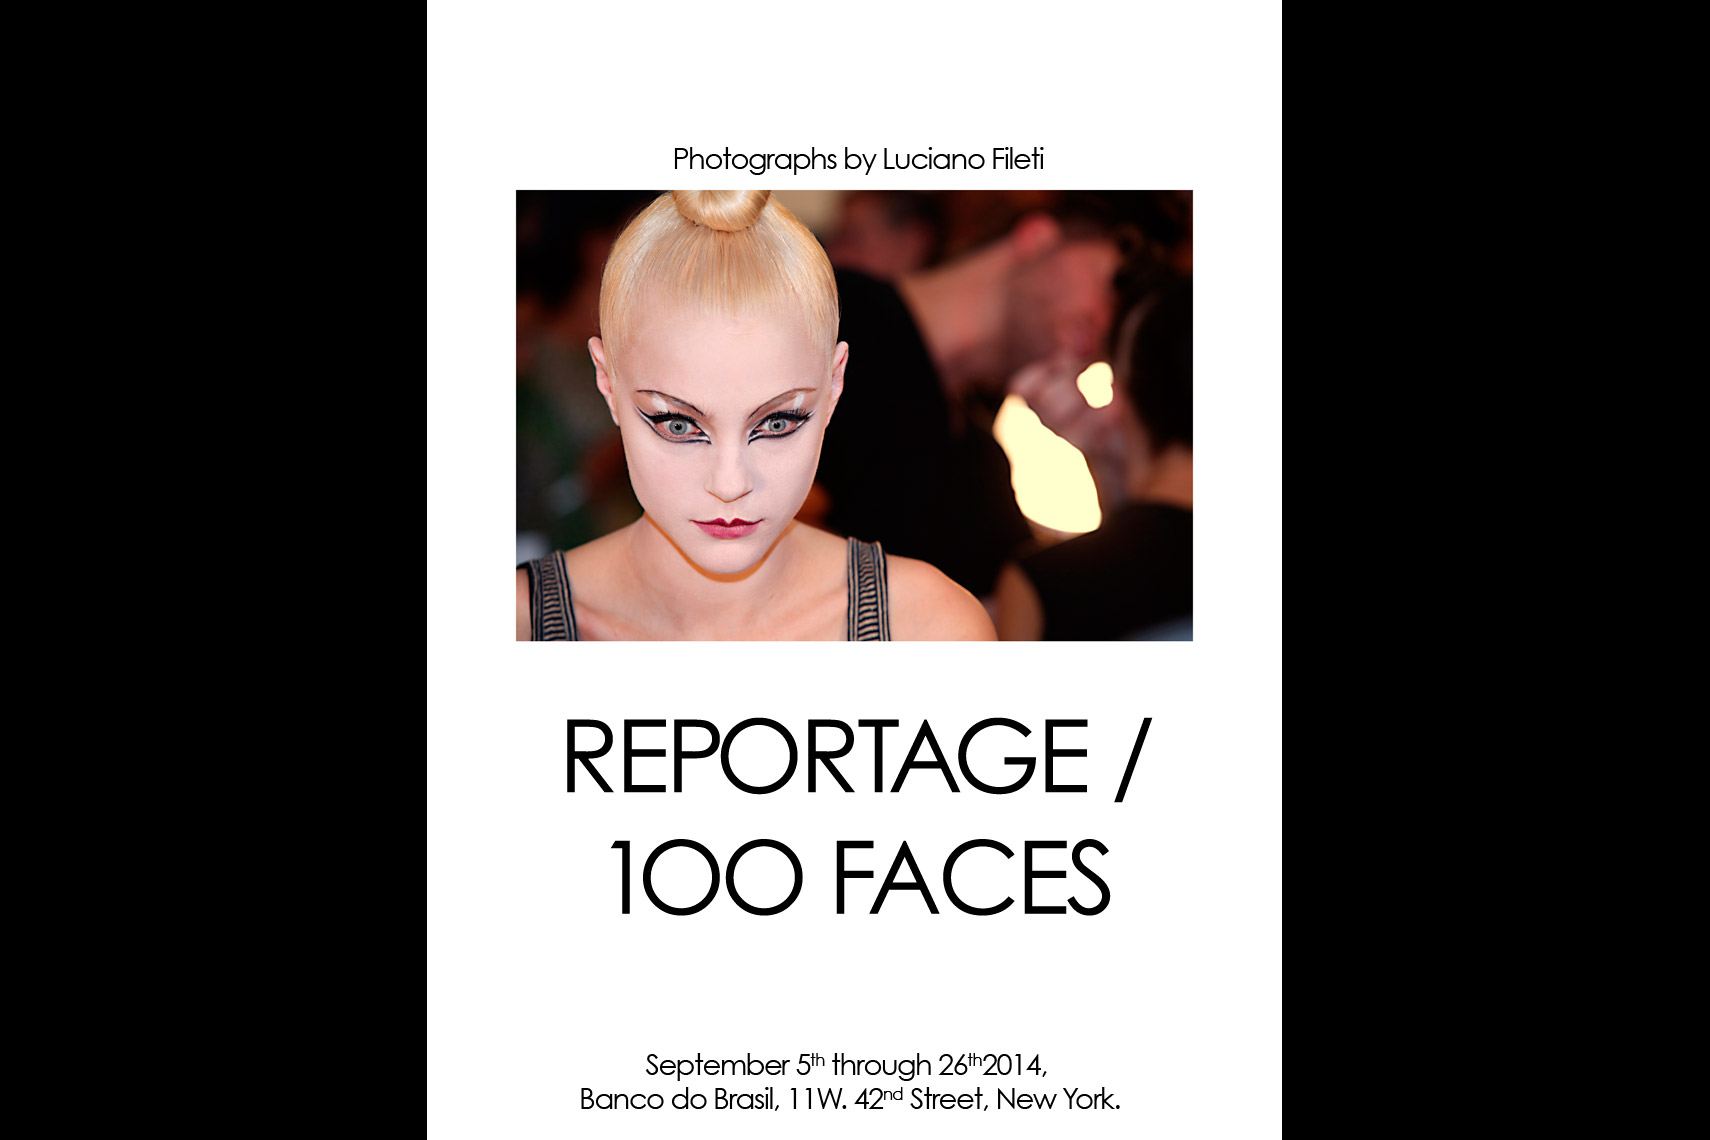 FILETI_REPORTAGE_100FACES_POSTER_2014